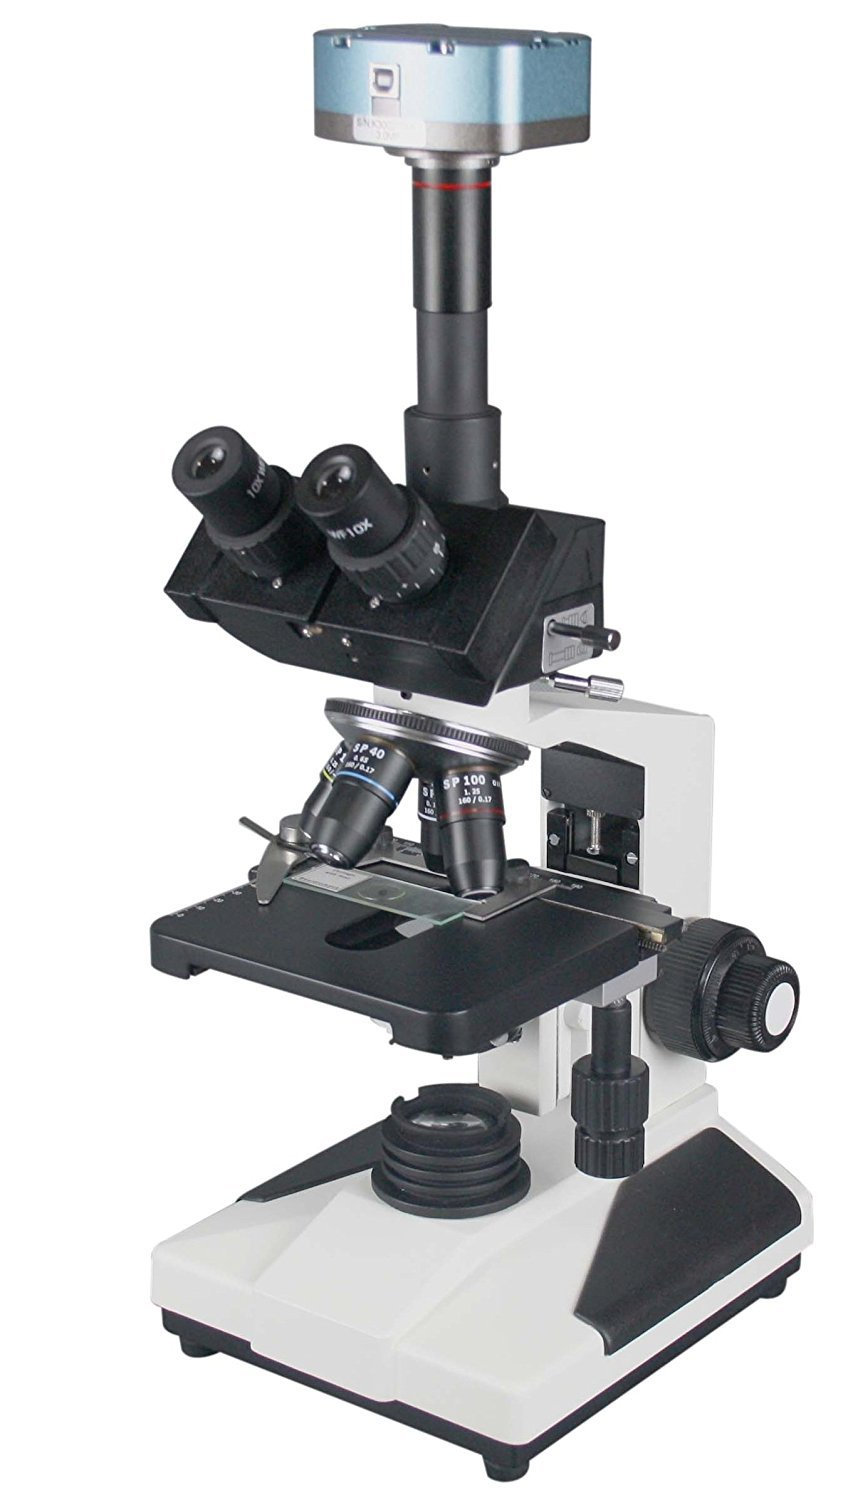 Radical 2500x Professional Research Clinical Doctor Trinocular LED Microscope w PLAN Objectives and 16 Mpix USB 3.0 Scientific Camera by Radical